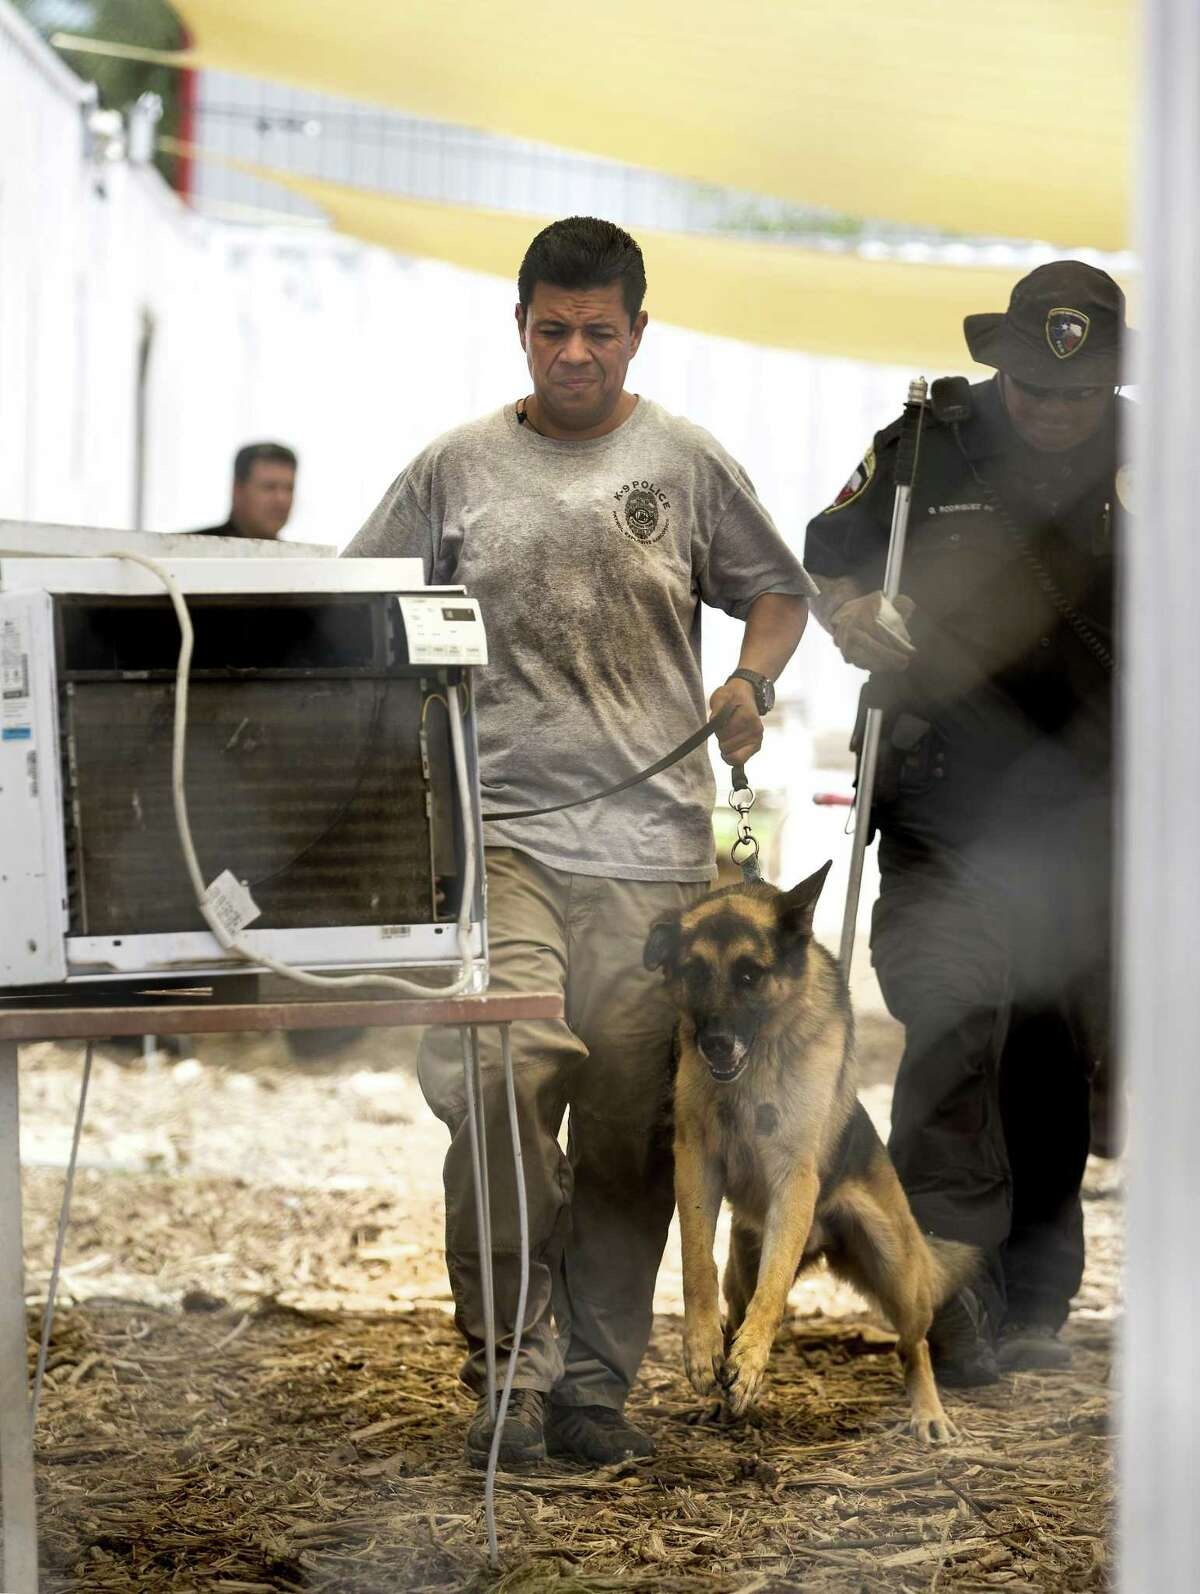 A handler moves a dog to an Animal Care Services transportation vehicle Wednesday at canine training facility Universal K9, 15329 Tradesman, near Loop 1604 on the Northwest Side. State and federal authorities served a search warrant on the organization's facility Wednesday. ACS took 26 dogs from the facility as part of the raid.